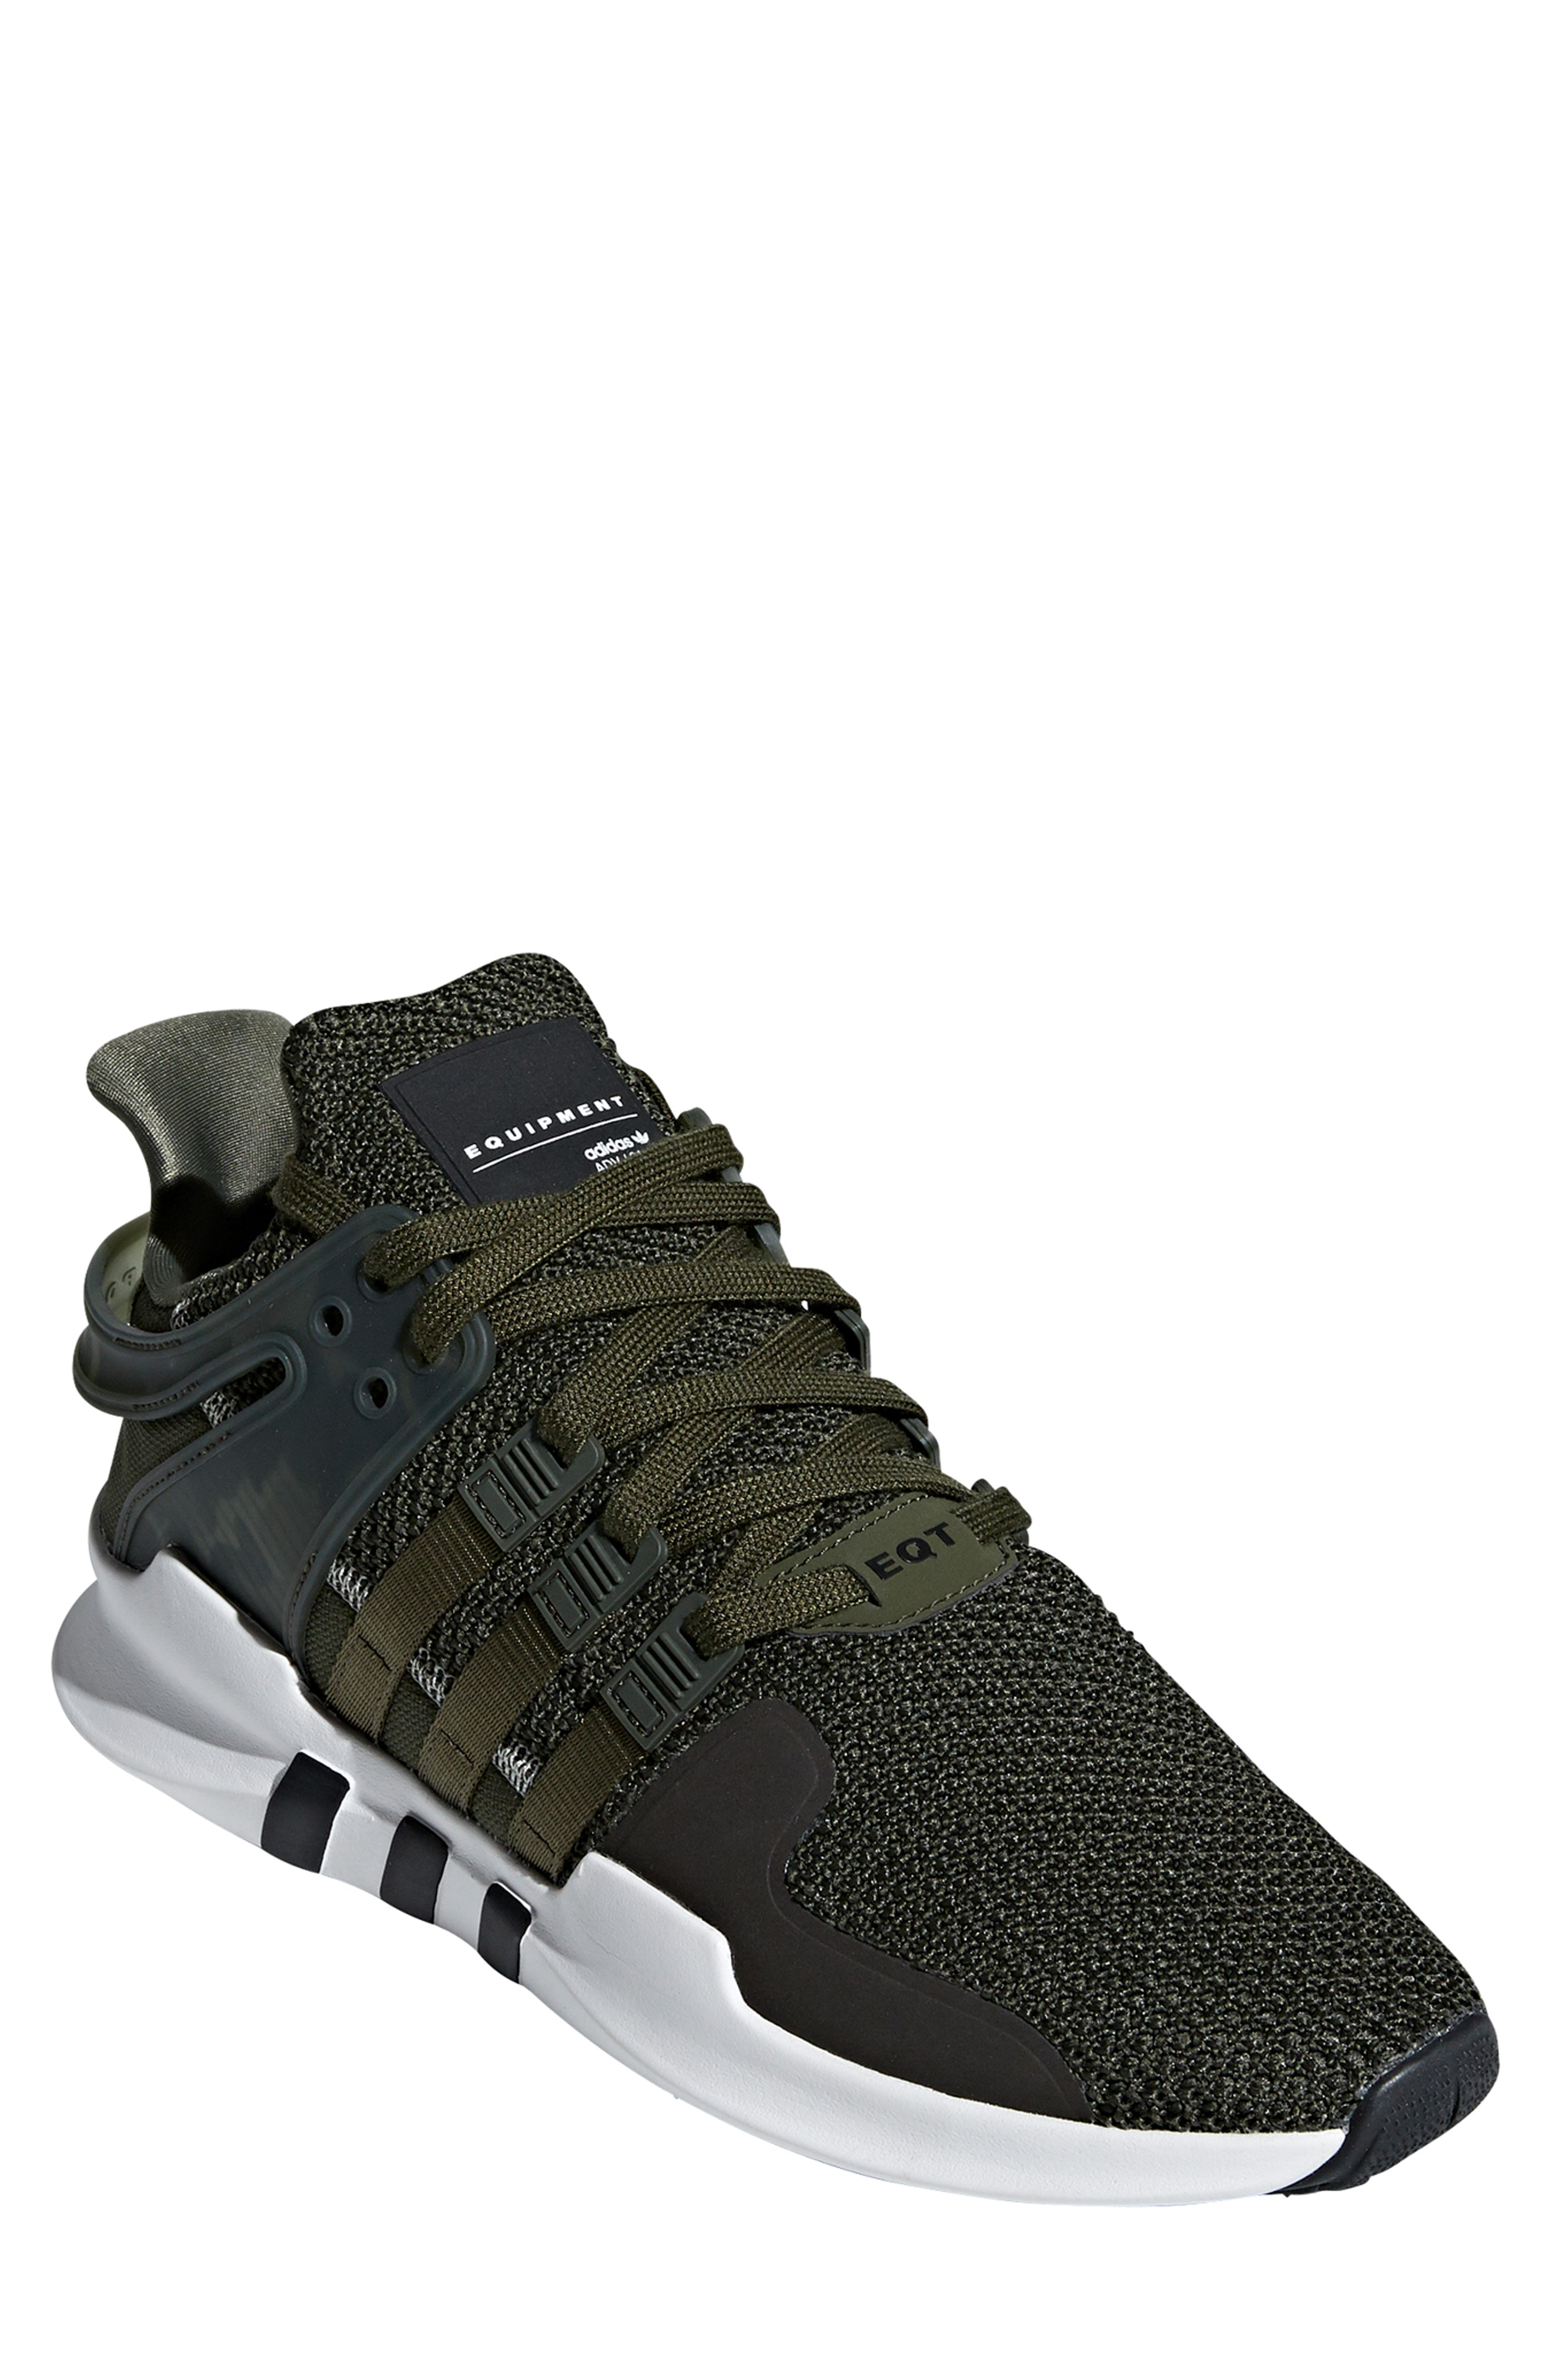 0bdafe6e5889 Adidas Originals Eqt Support Adv Sneaker In Night Cargo   White   Black